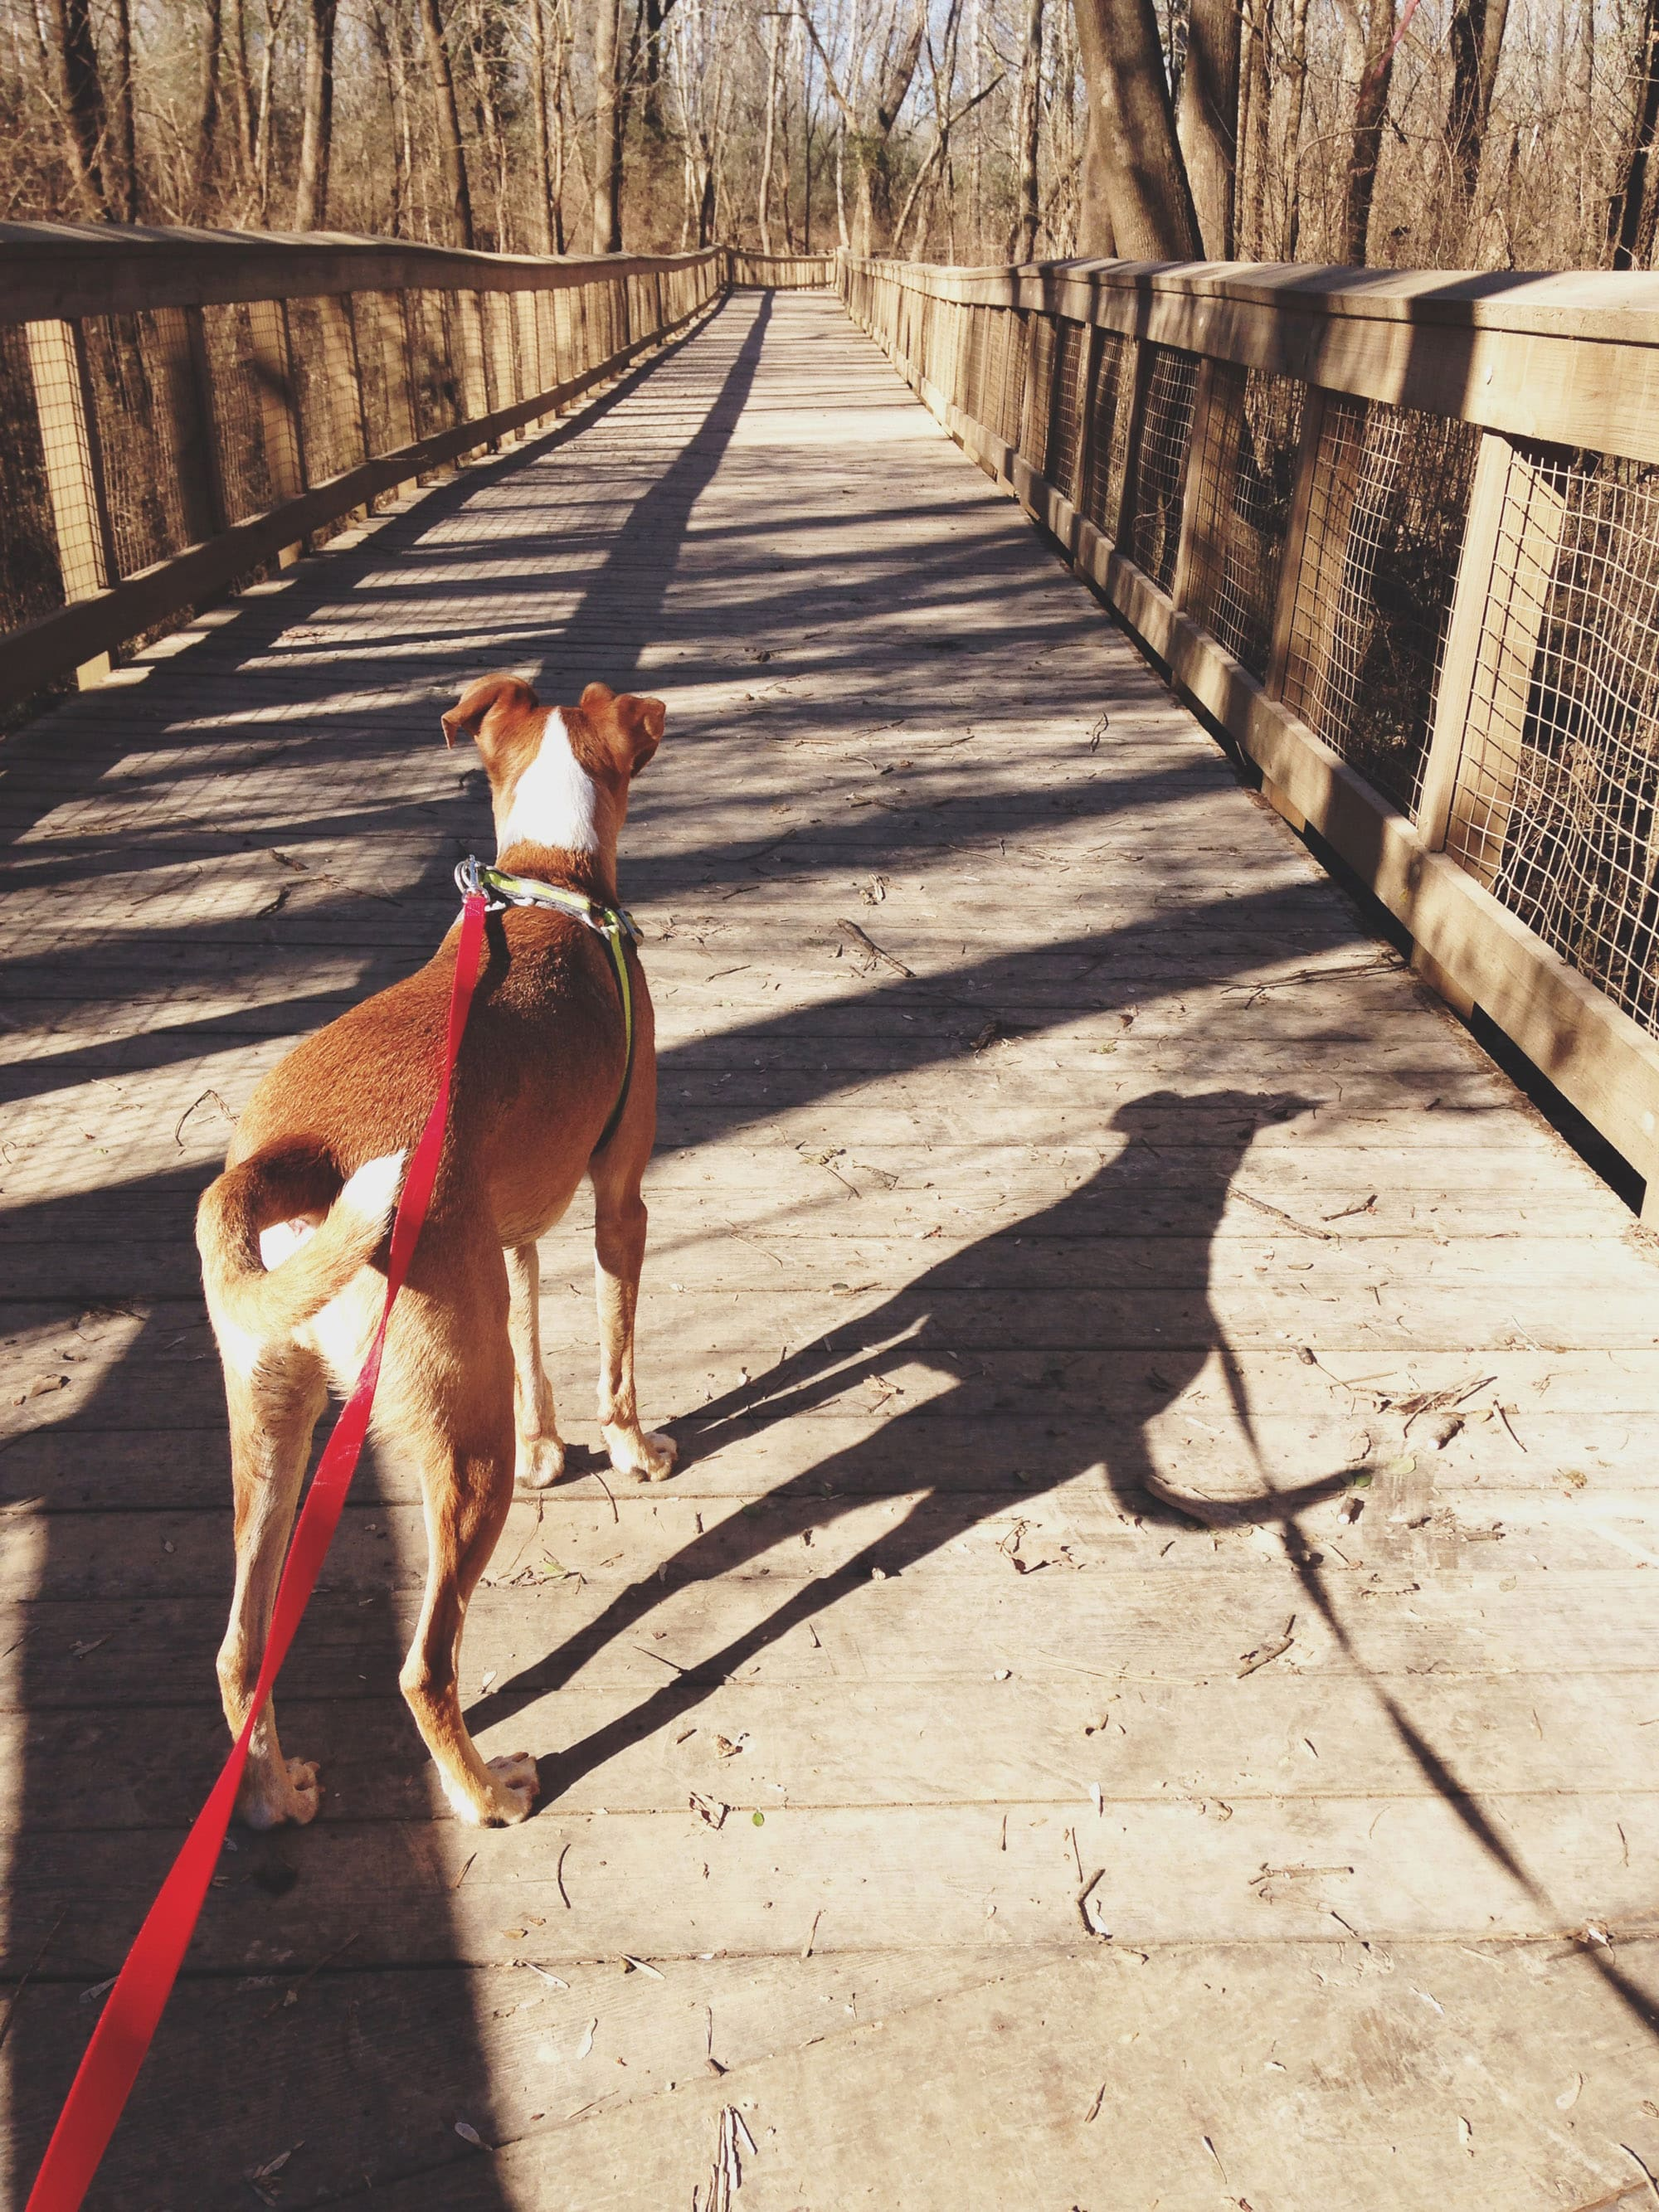 Milledgeville dog at Oconee River Greenway. Photo credit: Milledgeville CVB